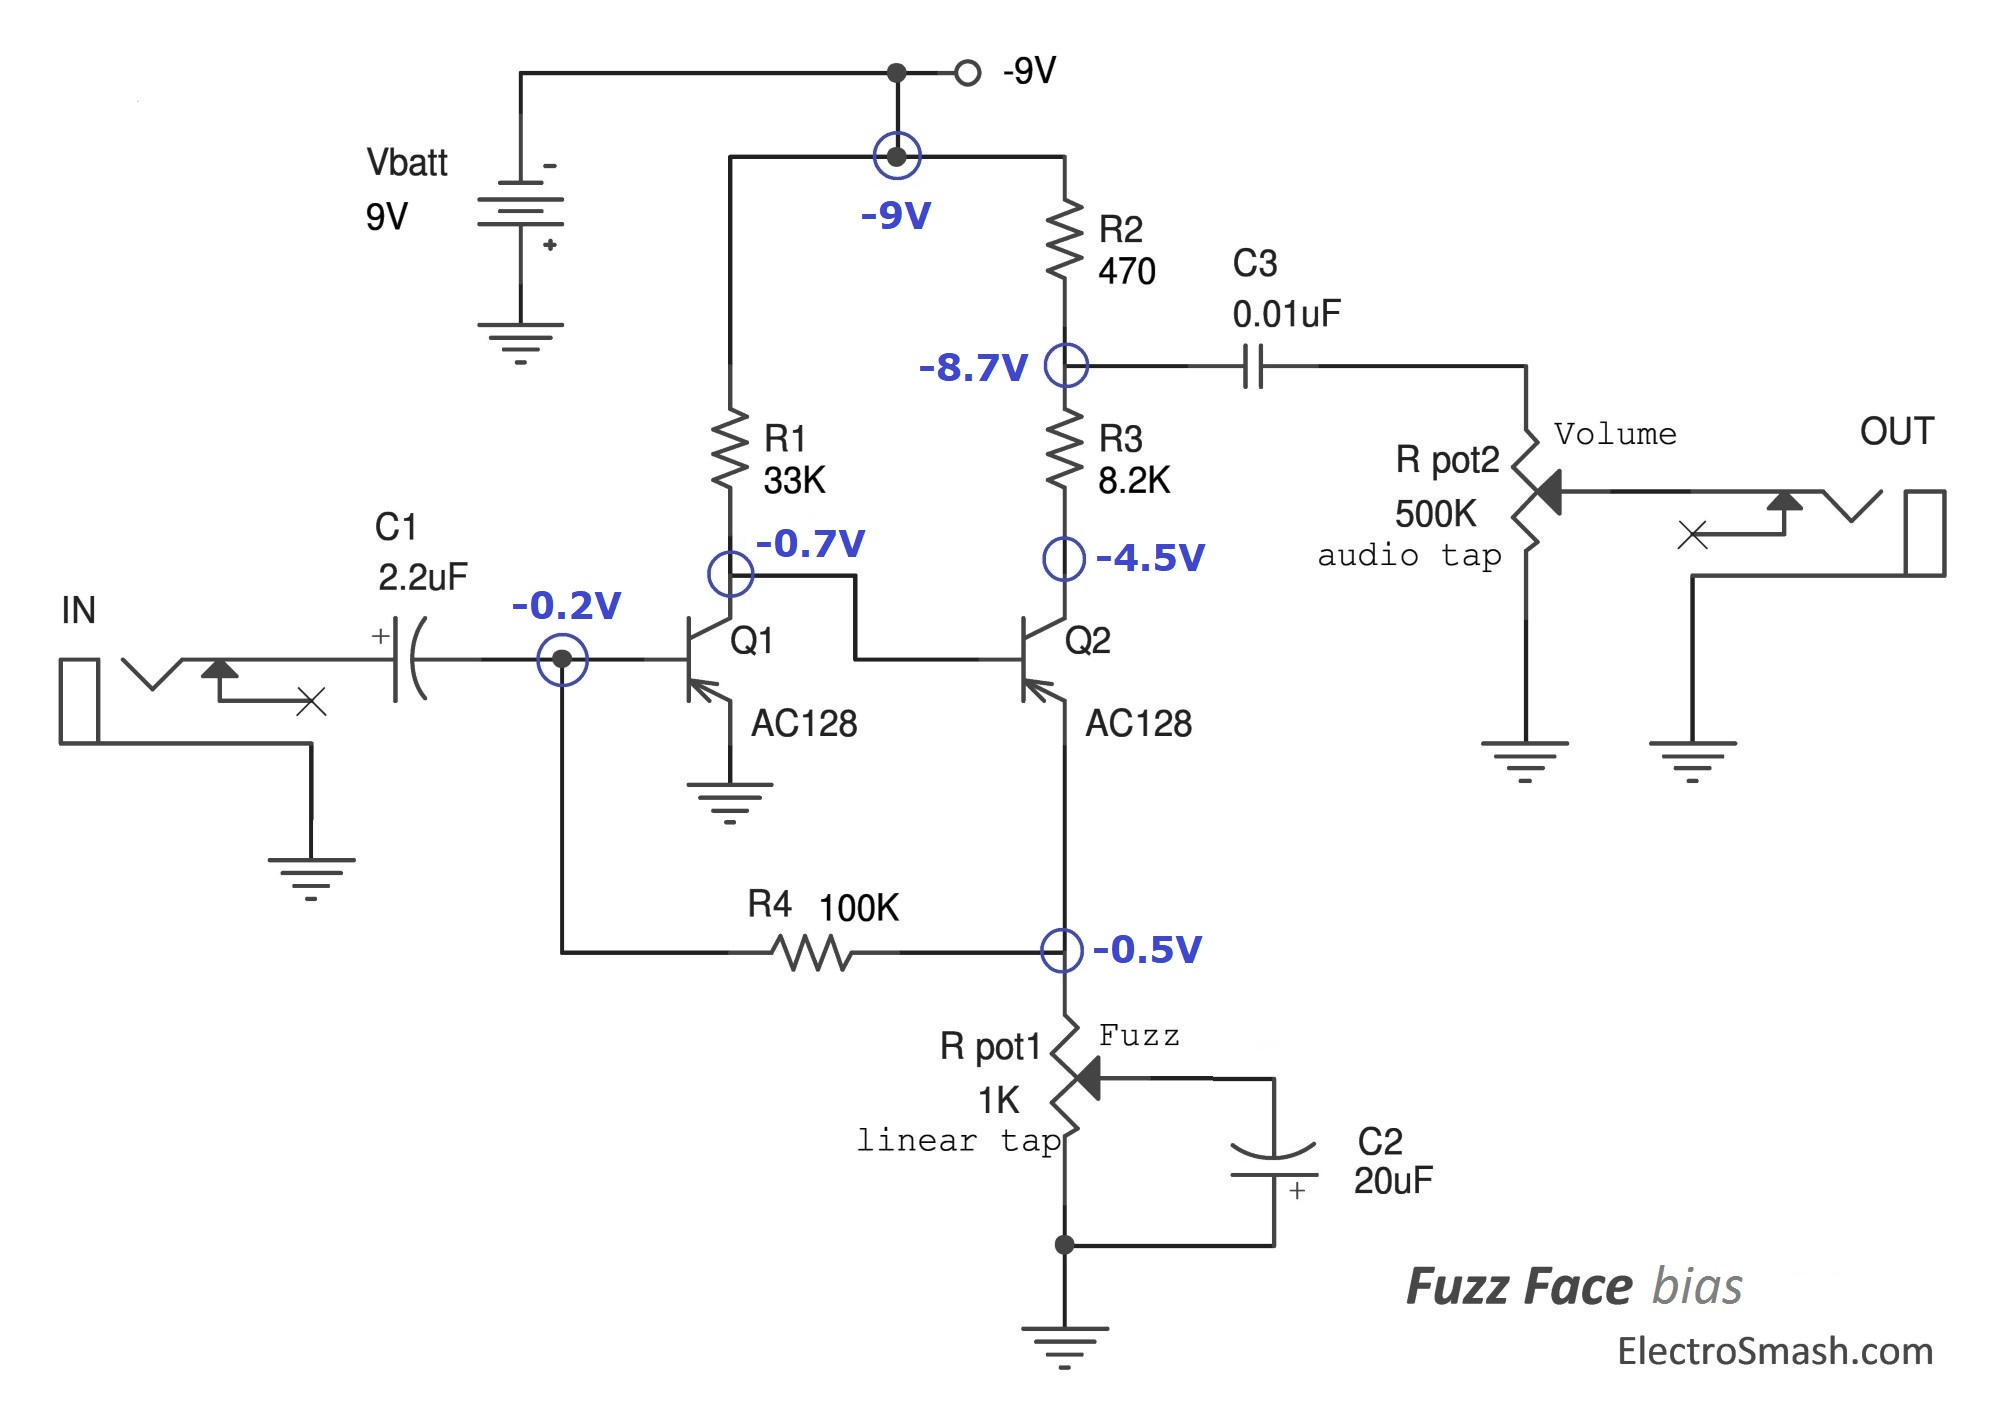 fuzz face bias electrosmash fuzz face analysis fuzz face wiring diagram at gsmx.co